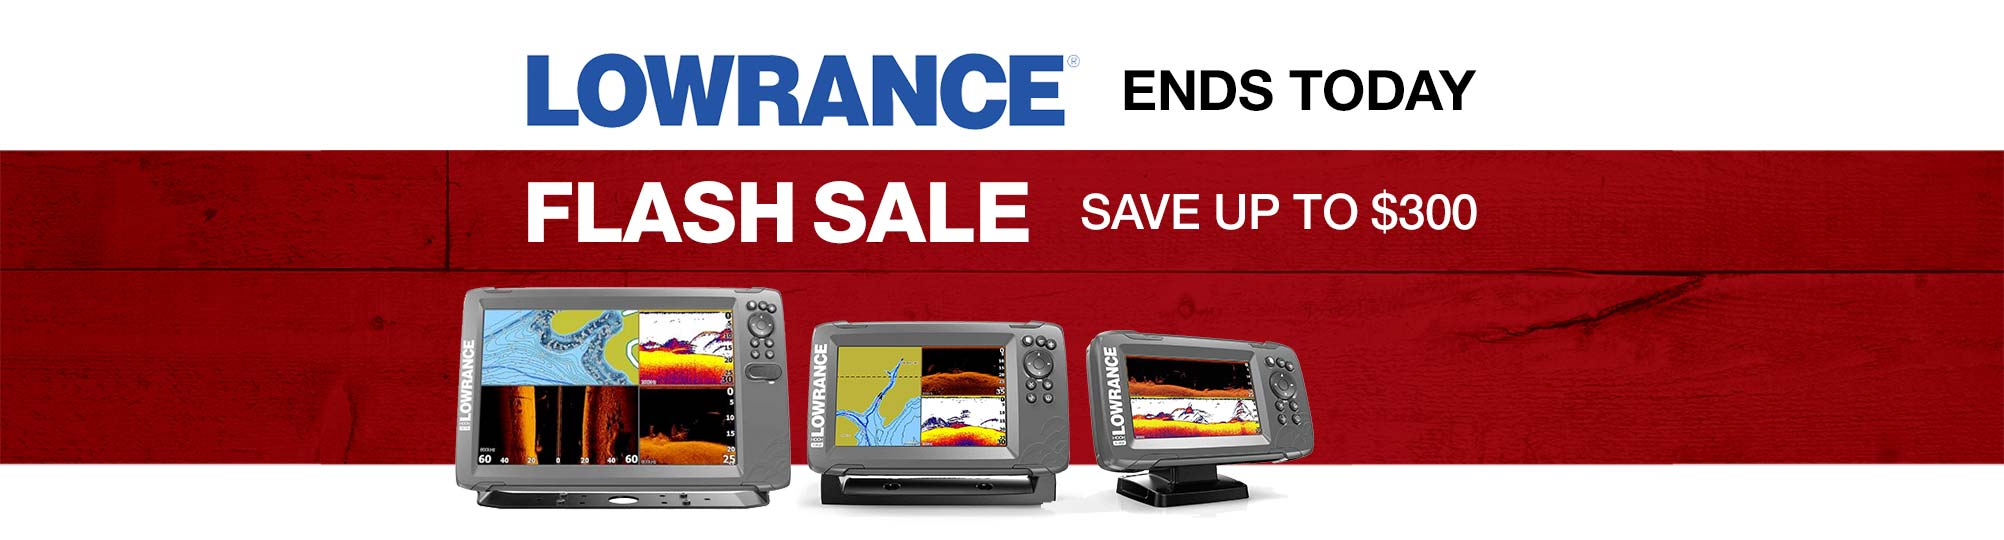 Lowrance Three Days Only Flash Sale Ends Today. Save Up To $300